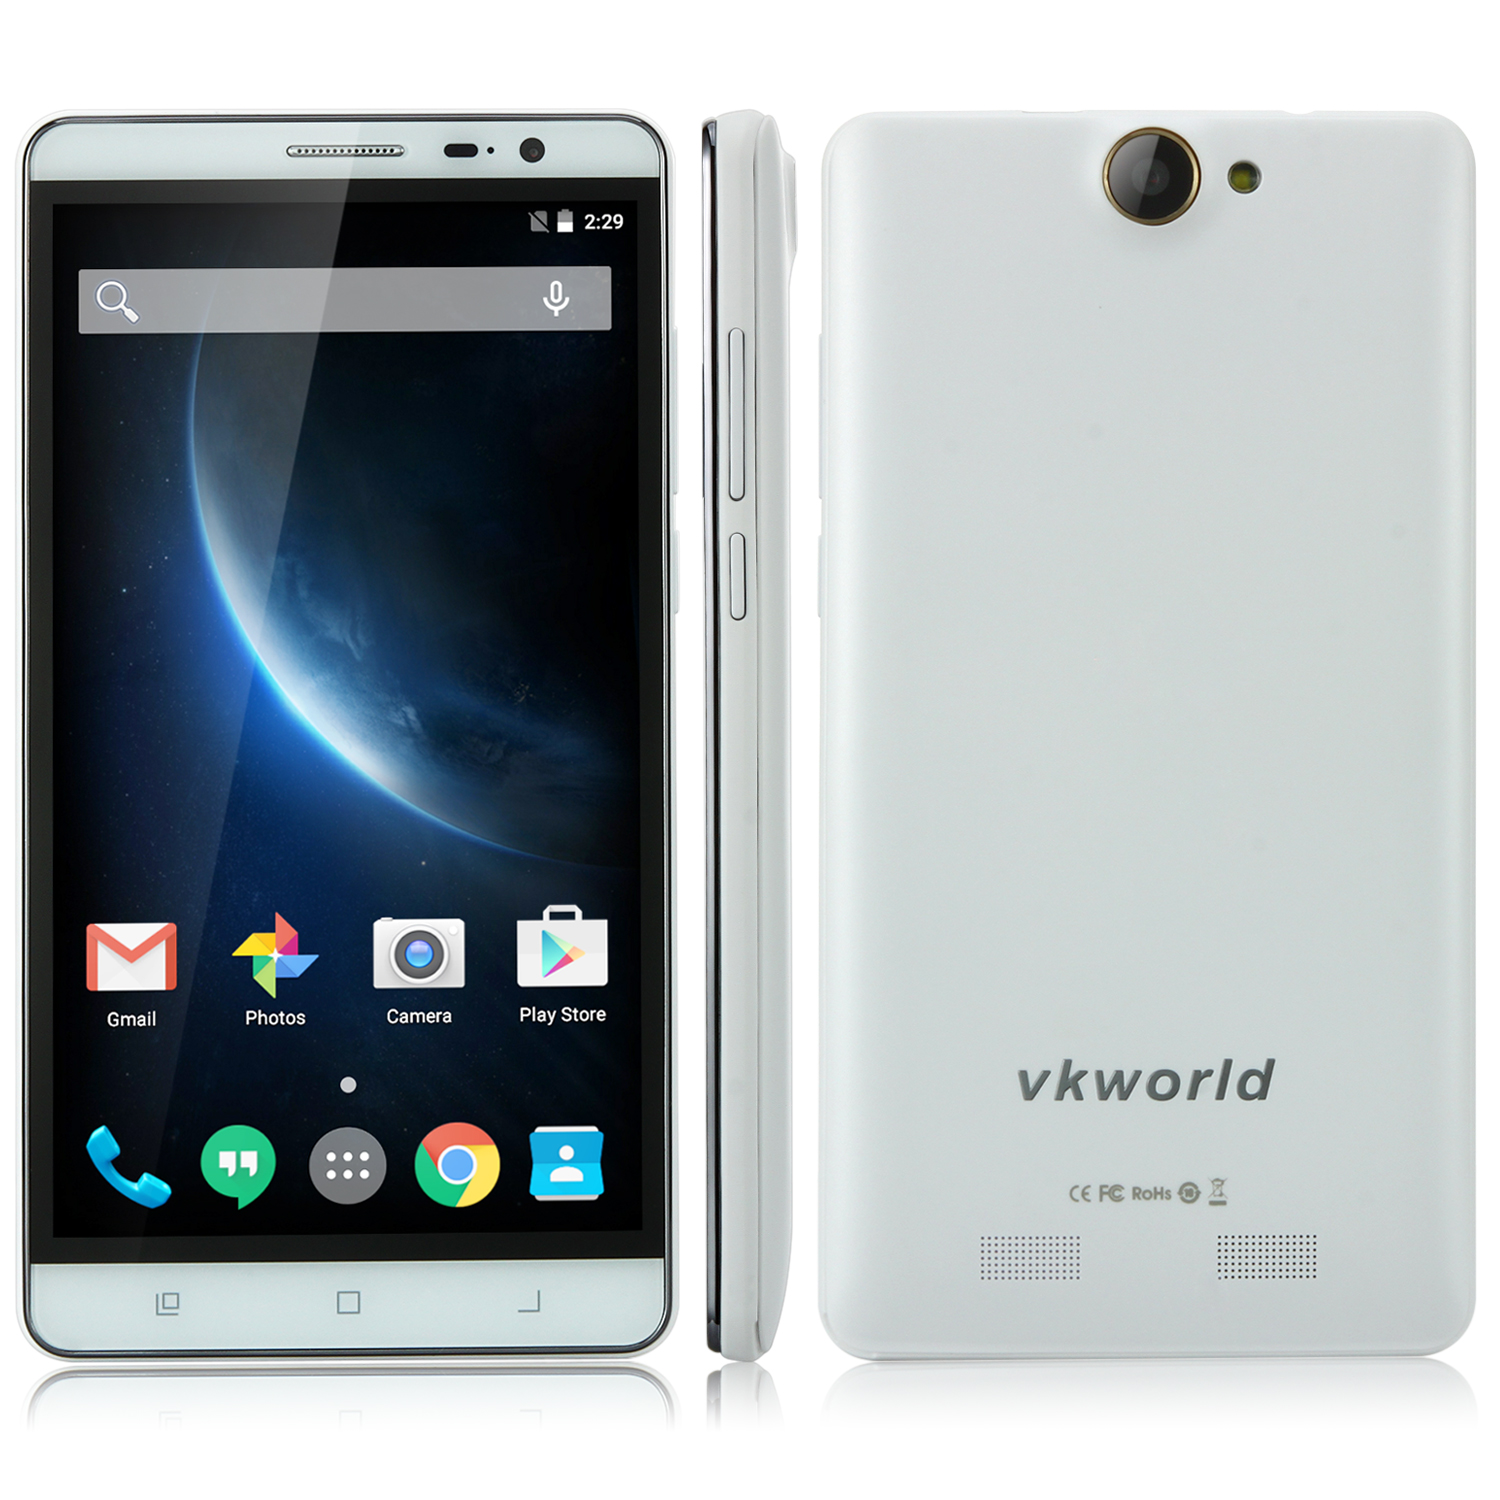 VKworld VK6050S Smartphone 5.5 Inch HD MTK6735 Android 5.1 2GB 16GB 6050mAh White